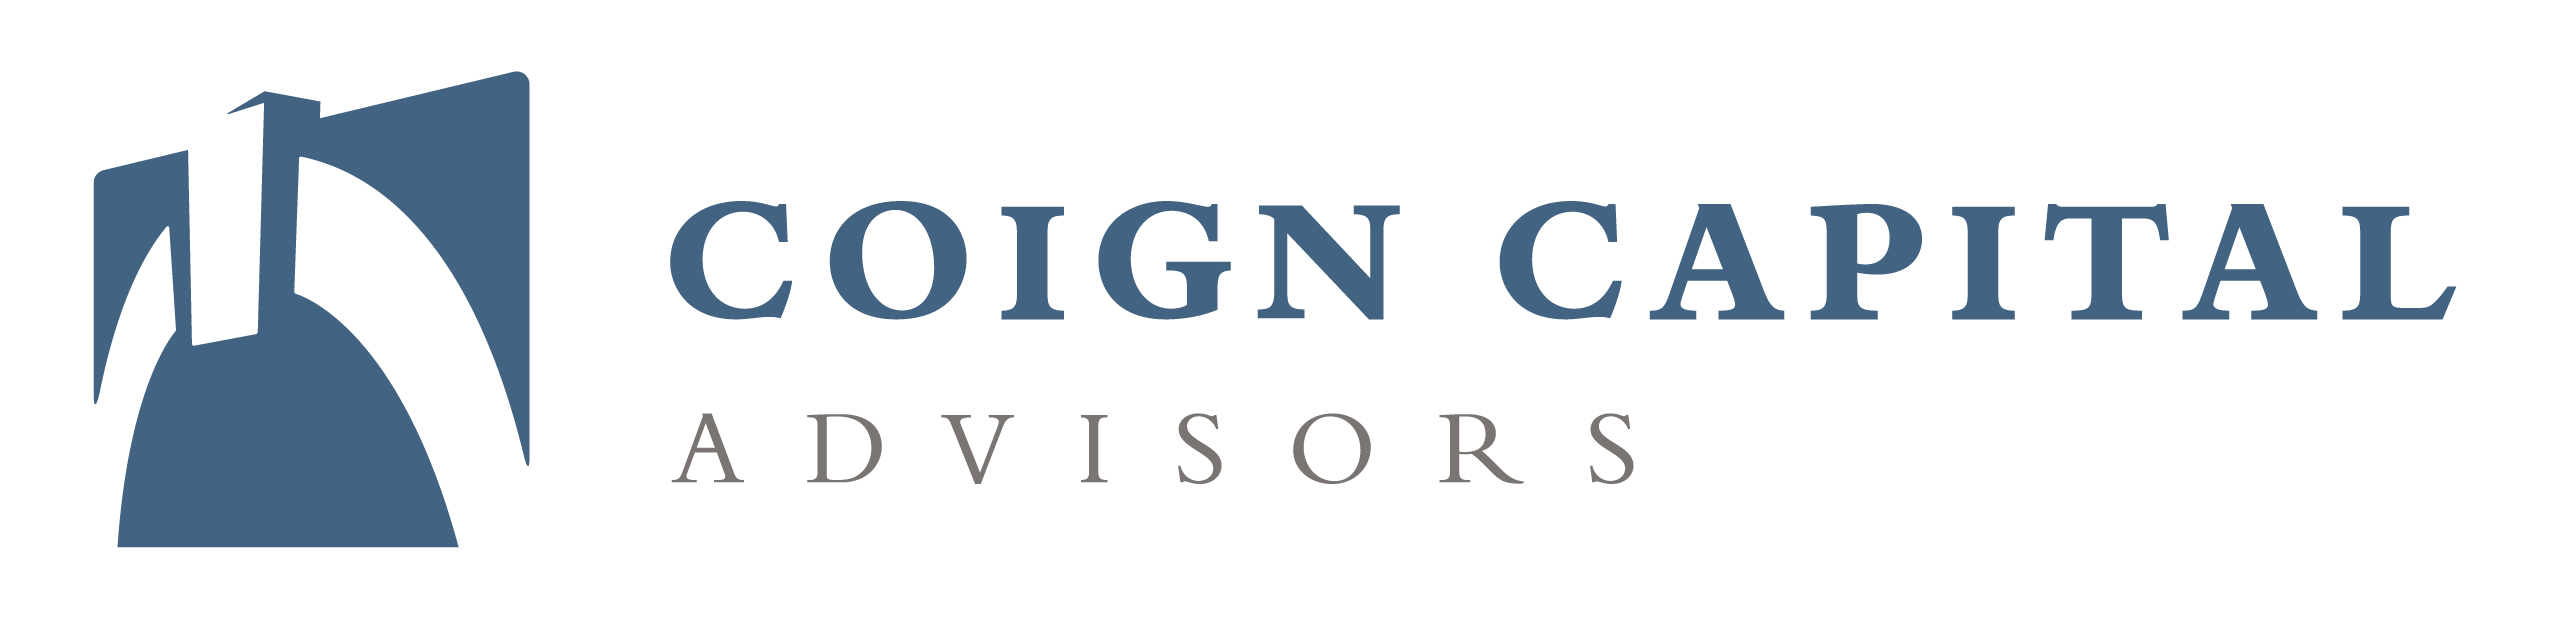 Coign Capital Advisors - Draper, UT